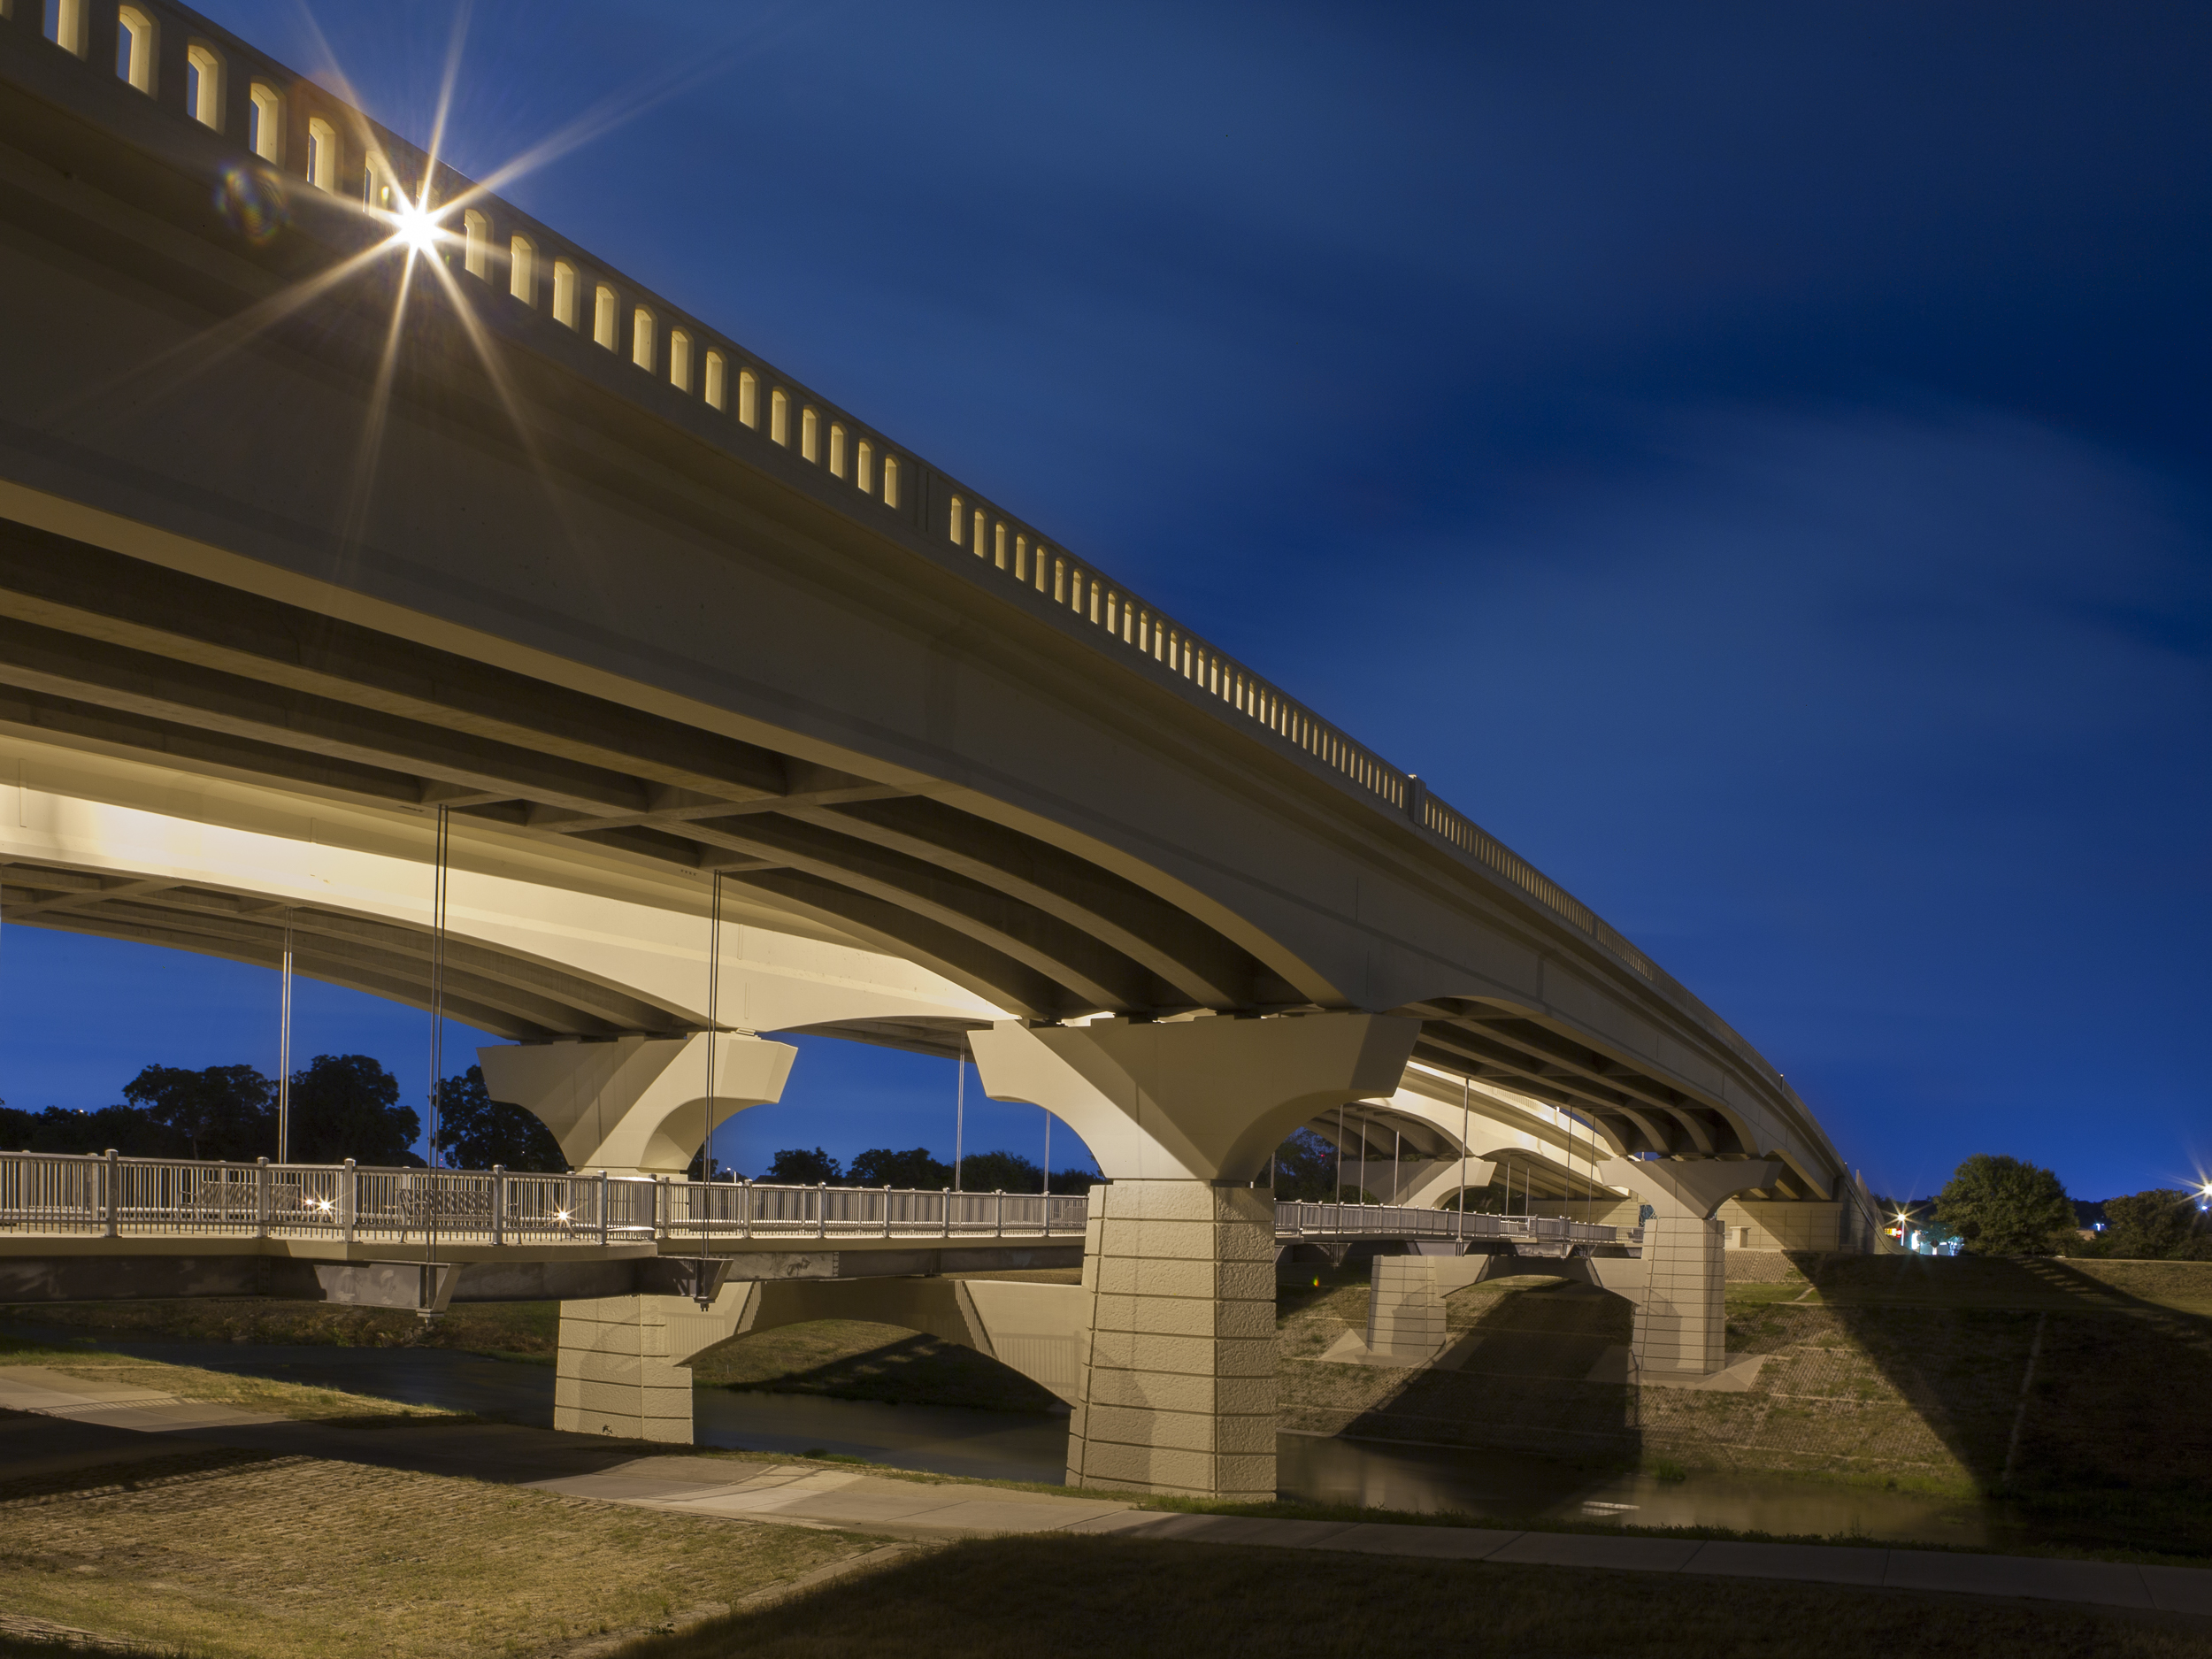 Clearfork Main Street Bridge in southwest Fort Worth, Texas, USA Copyright © Kipp Baker, All rights reserved.